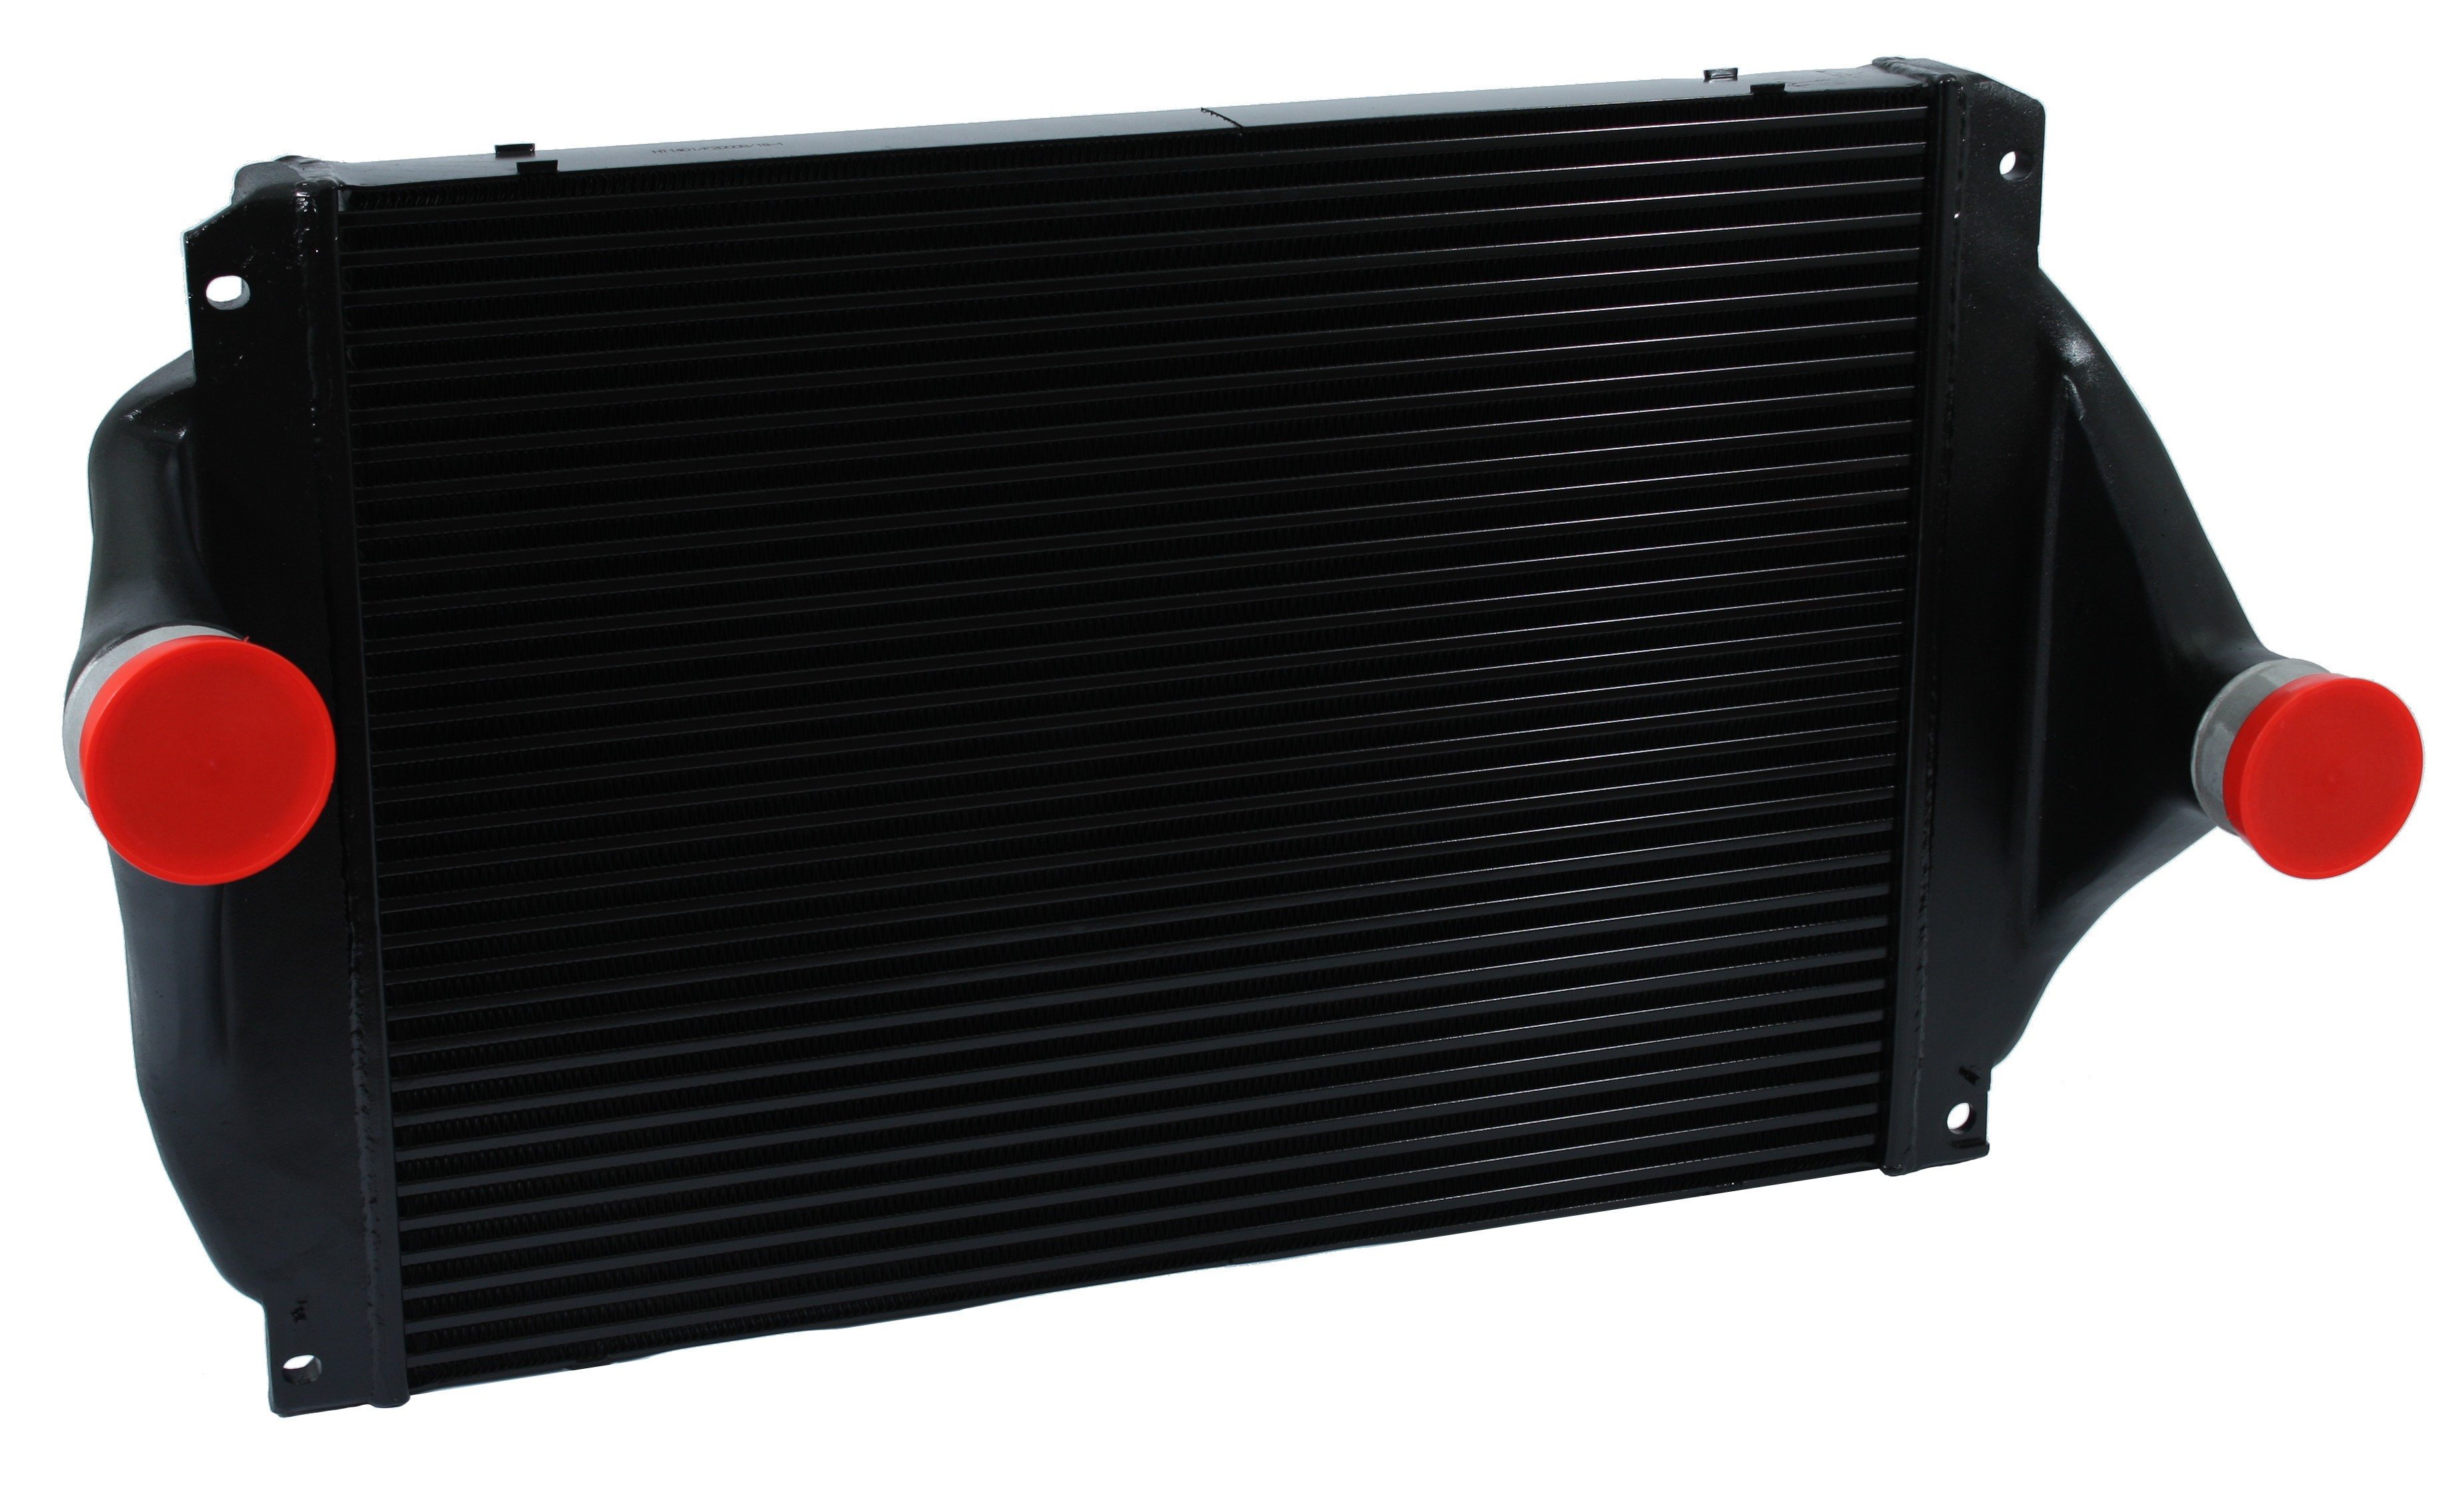 FREIGHTLINER | STERLING BAR & PLATE CHARGE AIR COOLER: 2008-2013 M2 112 BUSINESS CLASS, CASCADIA